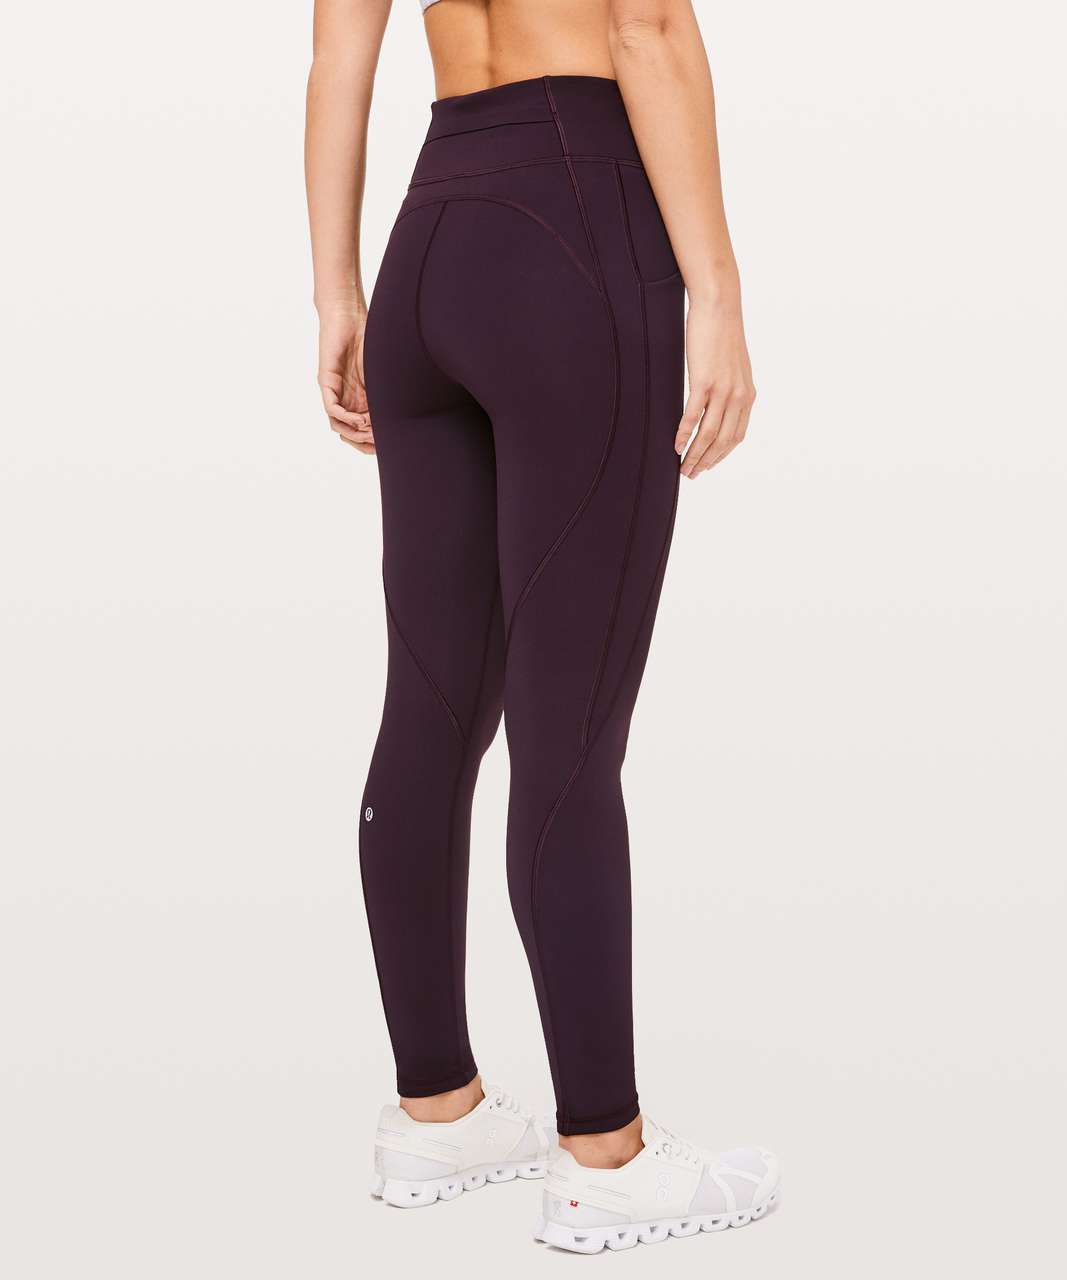 e0a342831 Lululemon Time To Sweat Tight  28